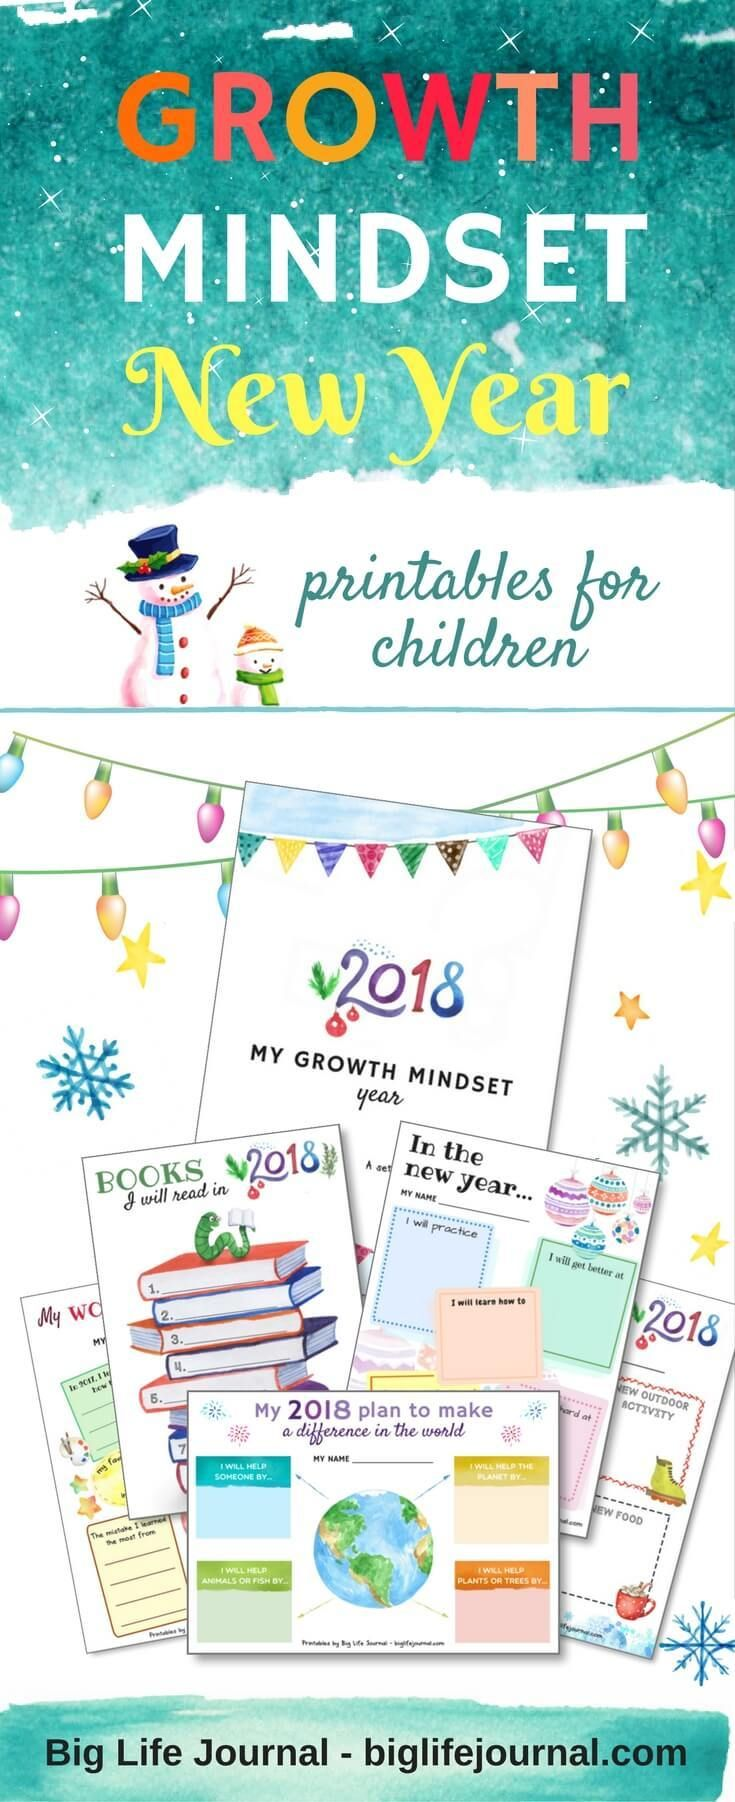 Growth Mindset New Year Kit (PDF) A set of 15 growth mindset activities for children! Includes growth mindset building printable worksheets ideal for home or classroom.